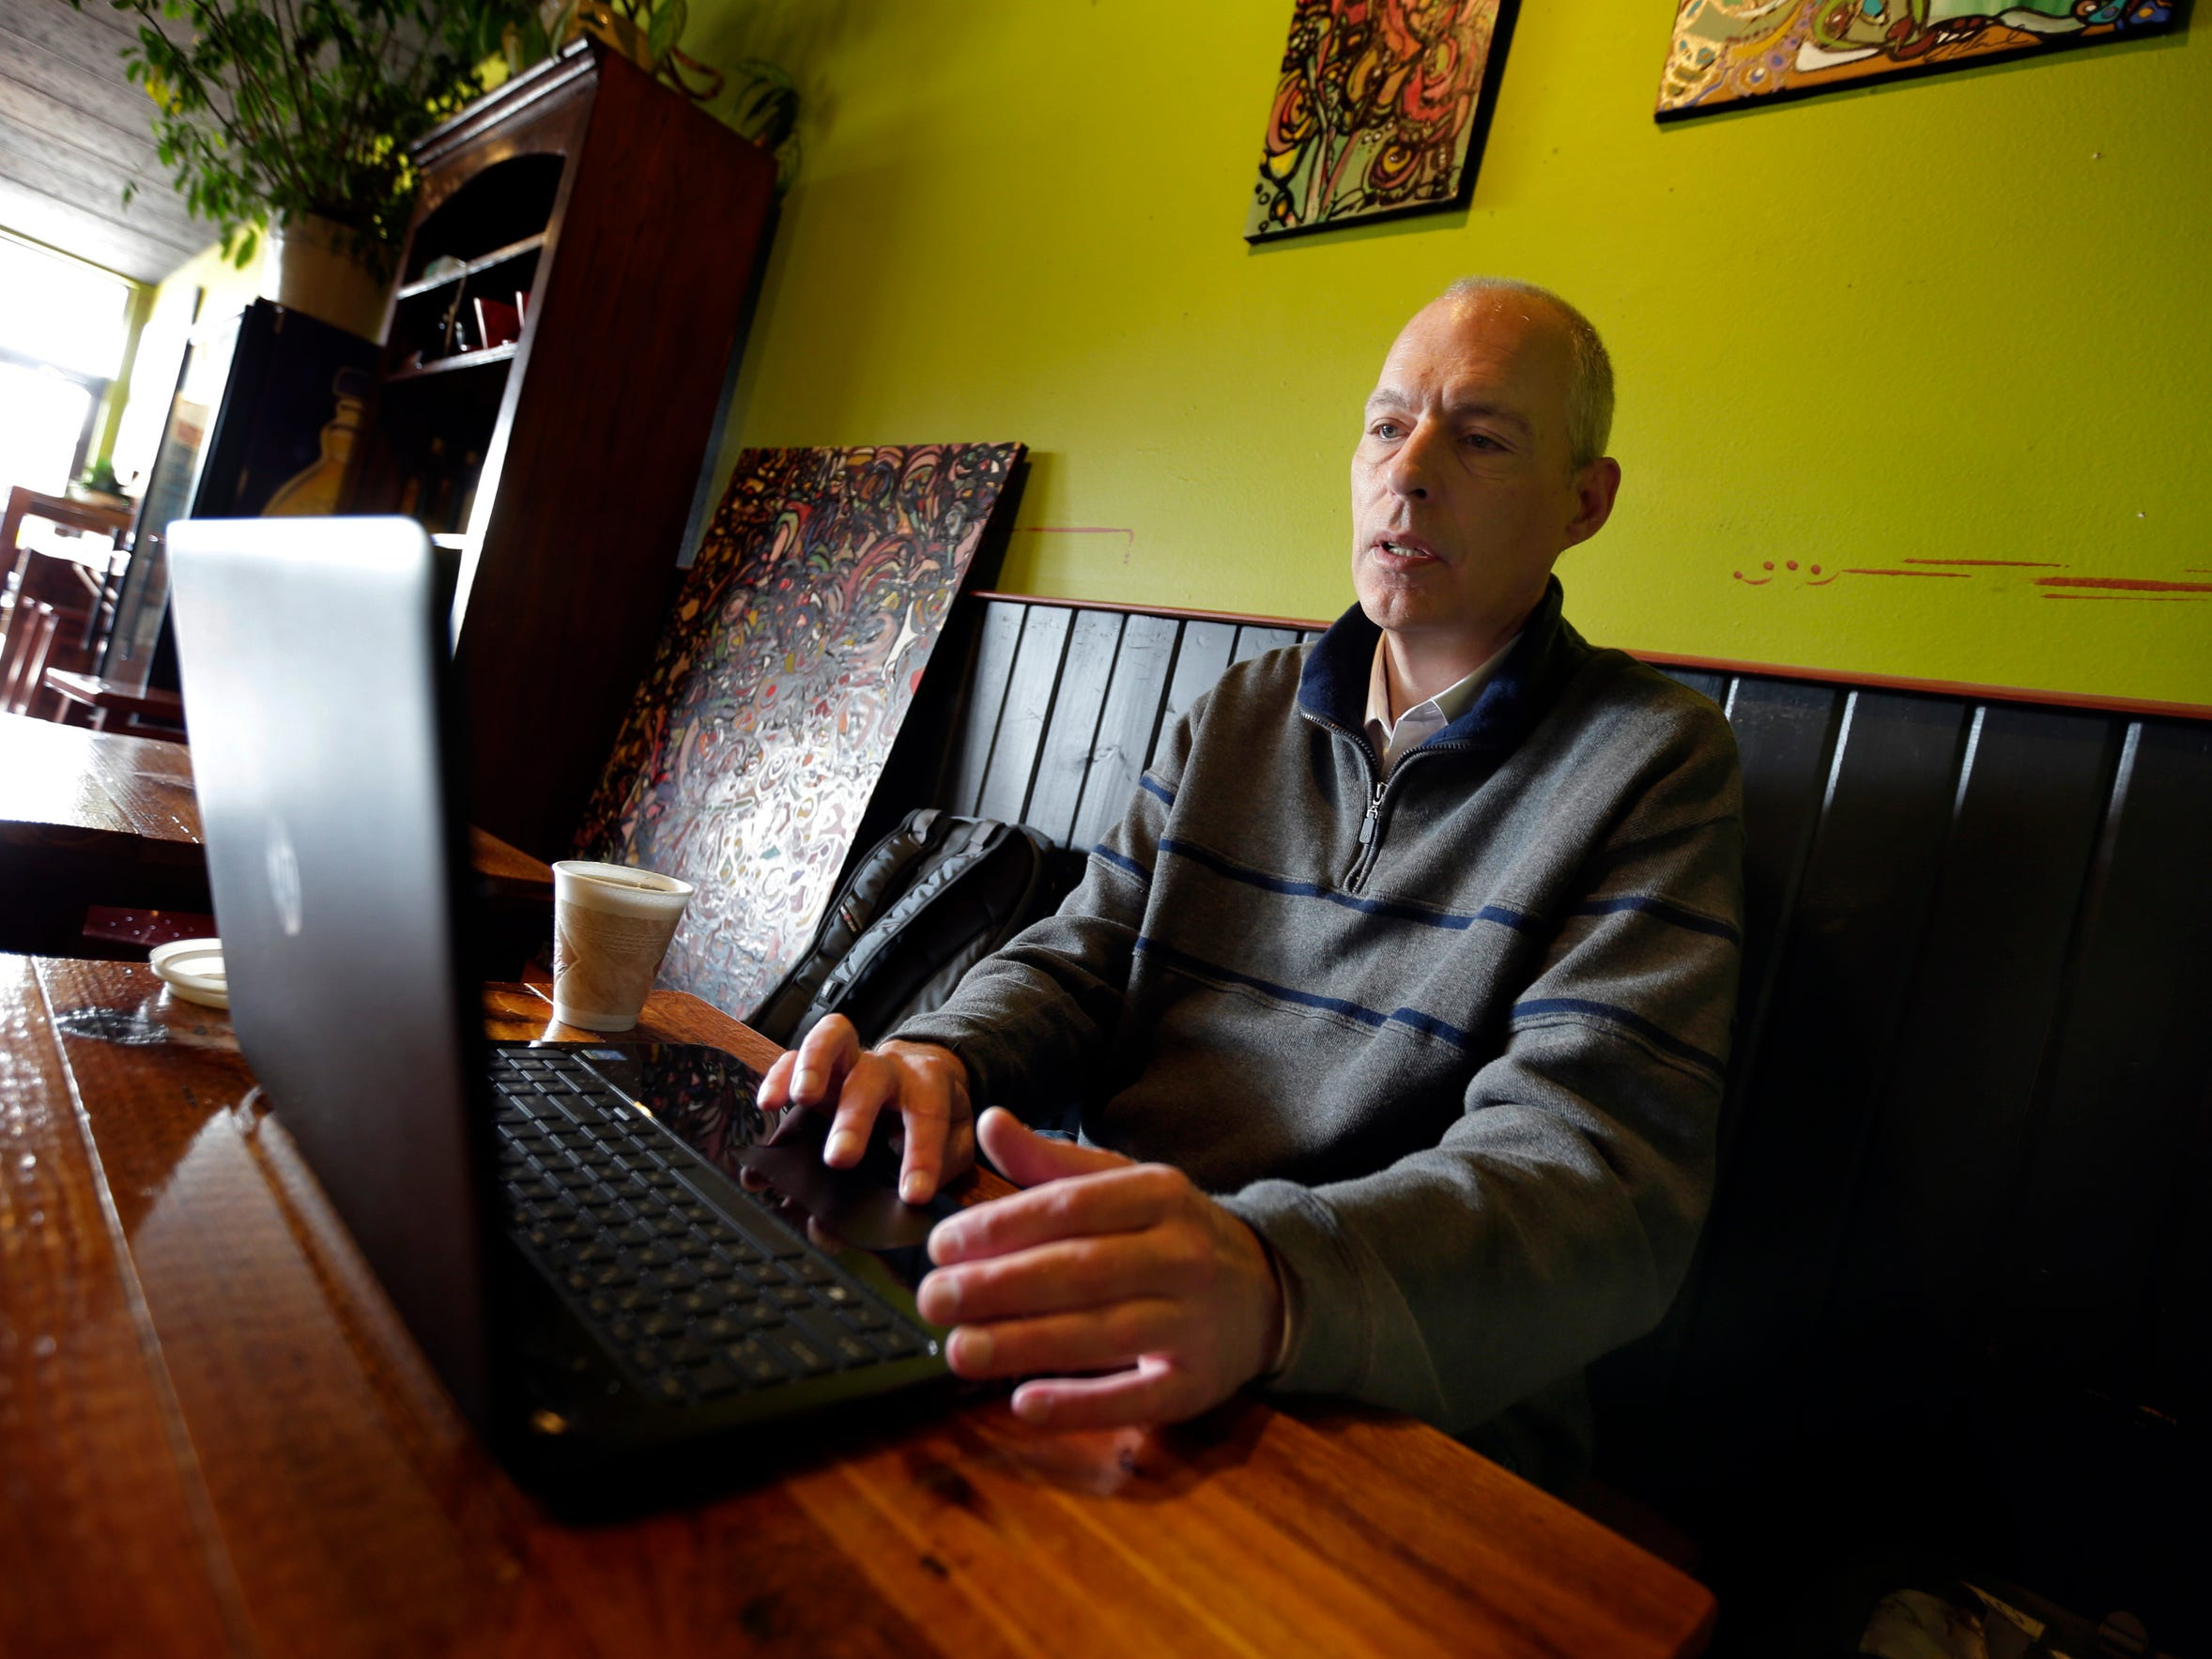 John Schaus works on his computer at a coffee house